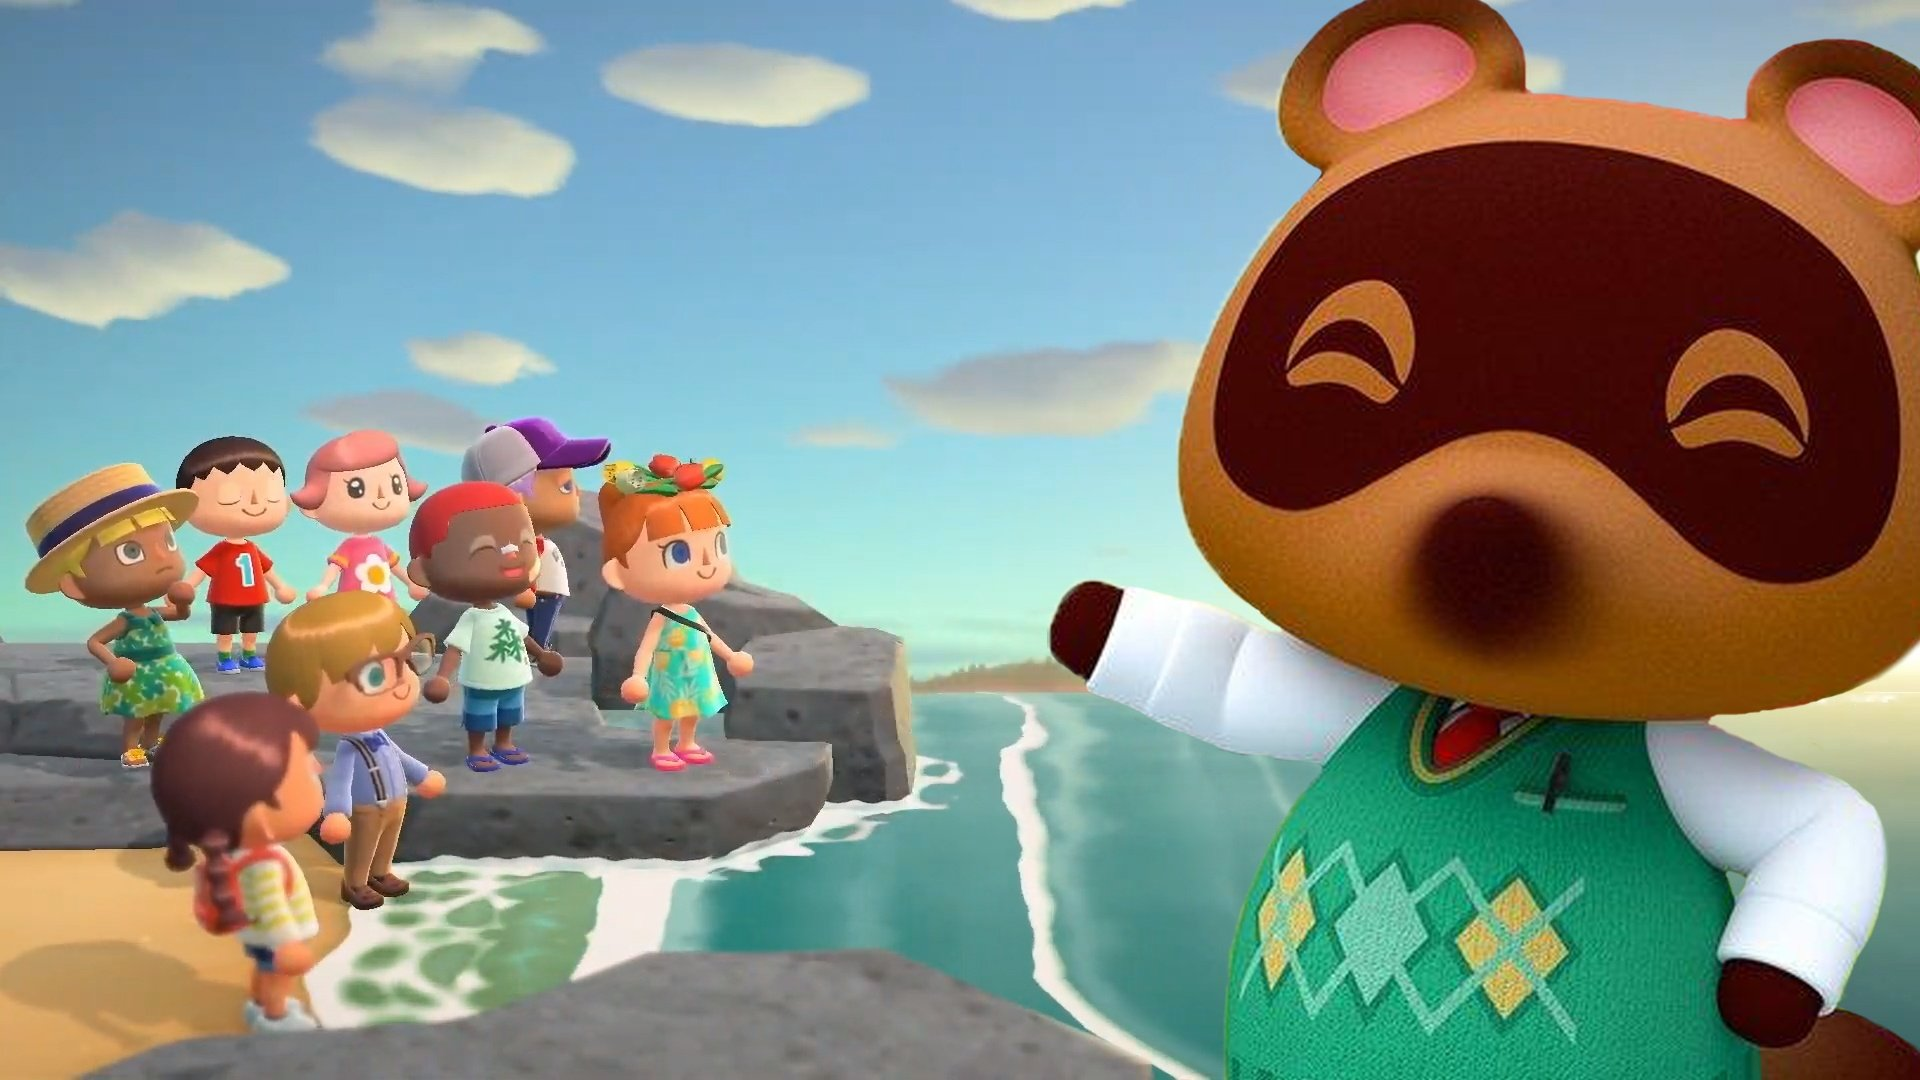 Follow The Animal Crossing New Horizons Twitter For Updates